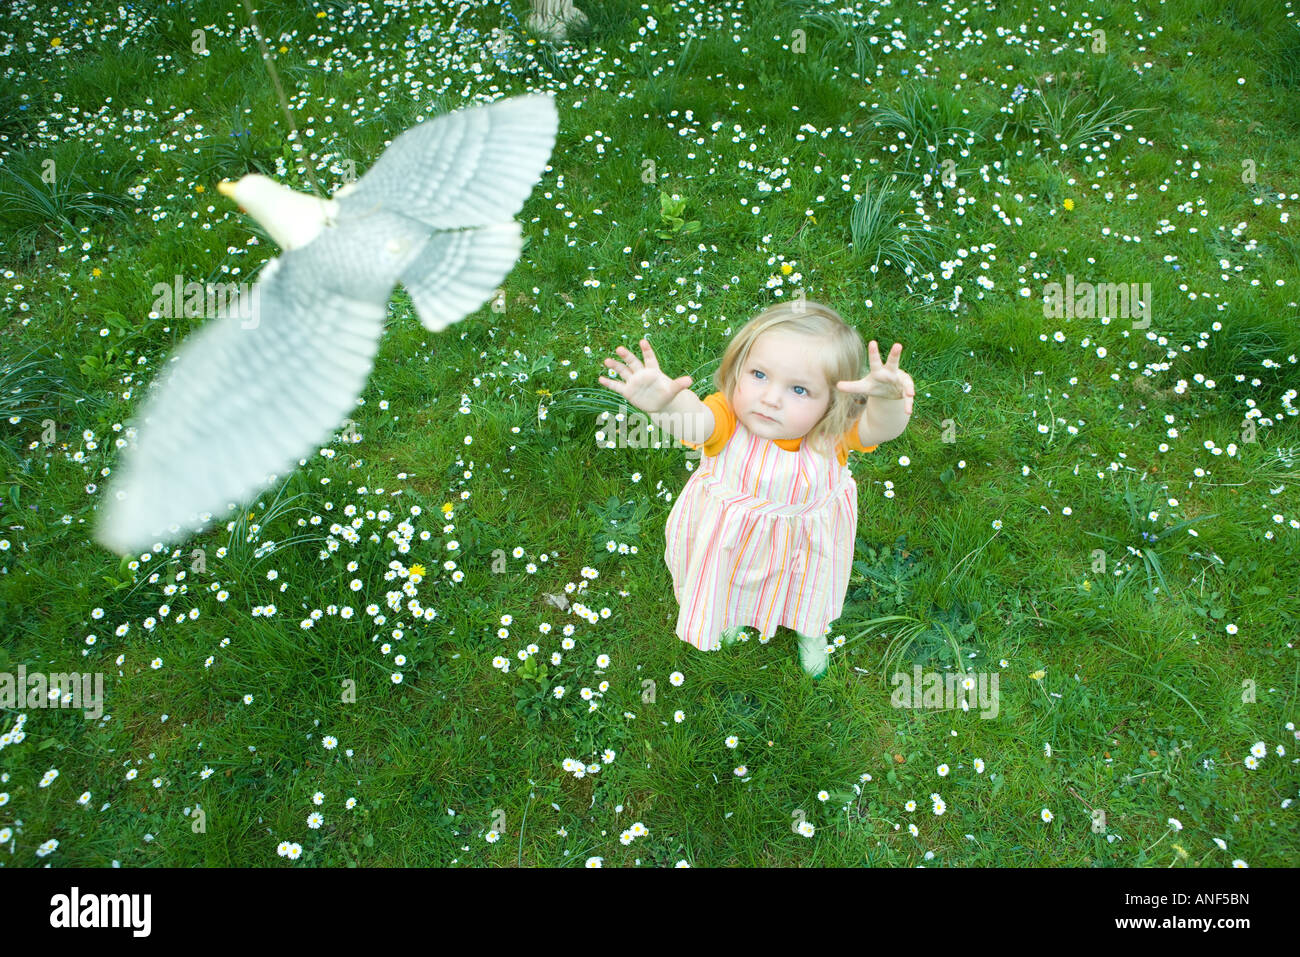 Toddler Girl Reaching For Toy Bird High Angle View Stock